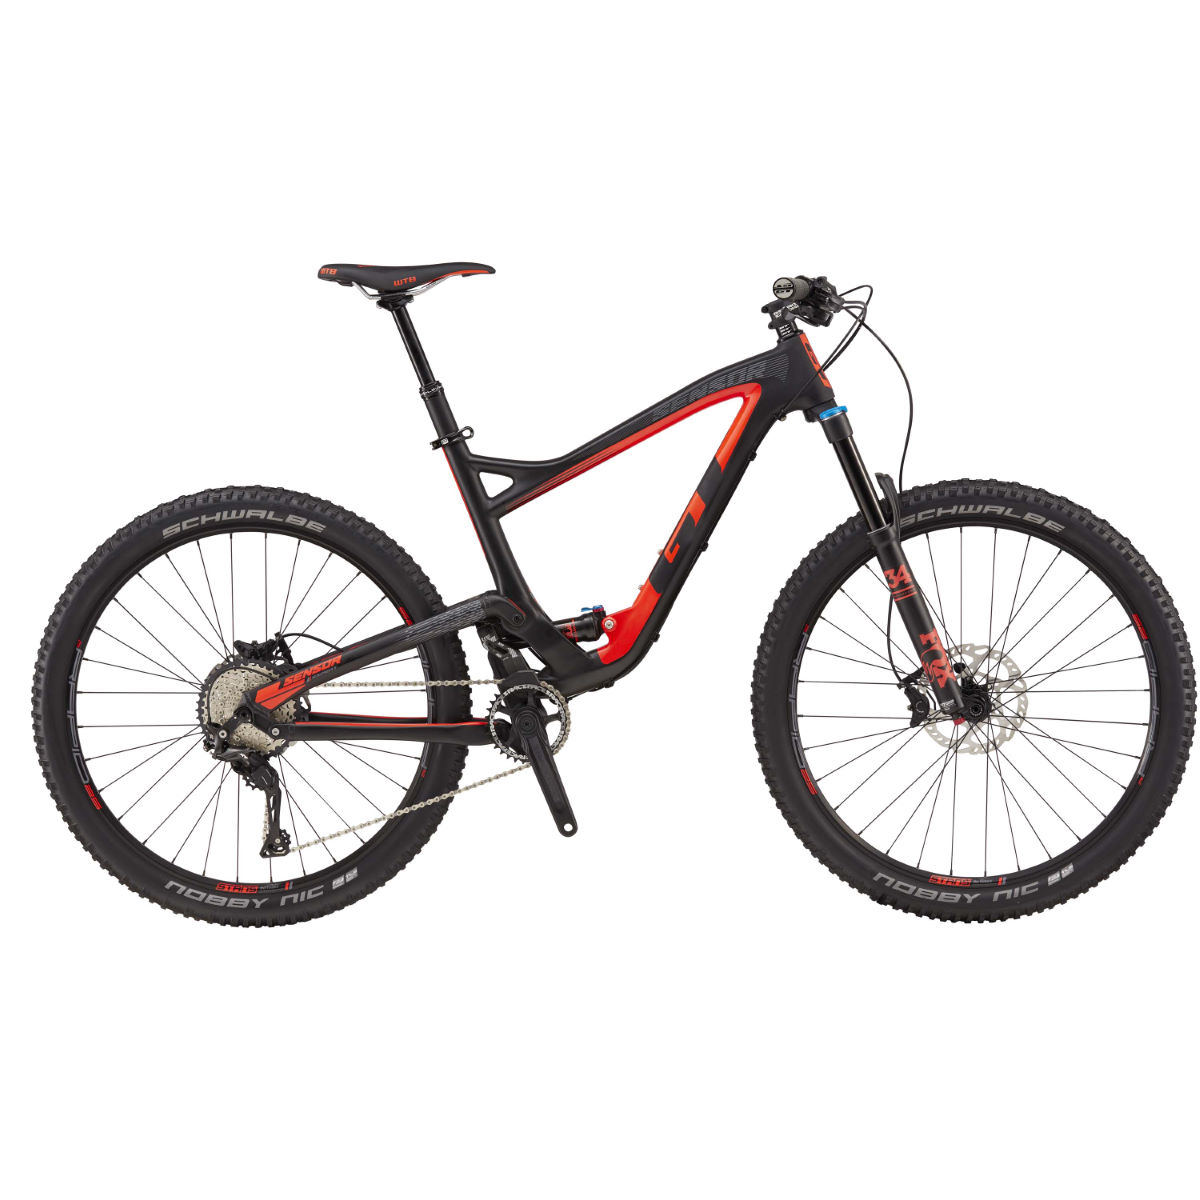 GT Sensor Carbon Expert (2017) Mountain Bike   Full Suspension Mountain Bikes